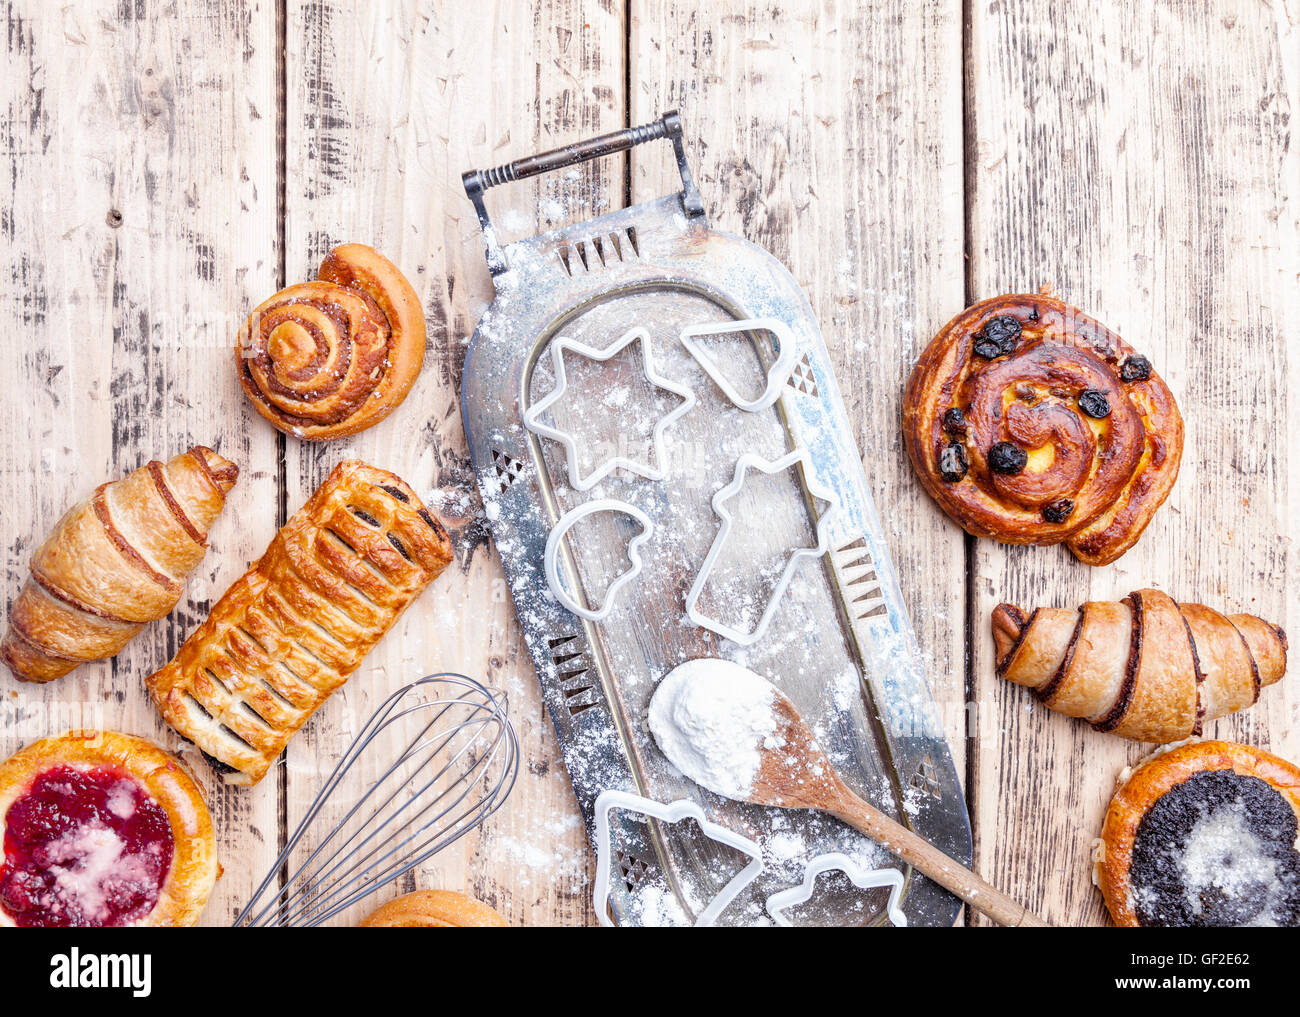 Delicious Christmas holiday baking background with ingredients and utensils Stock Photo